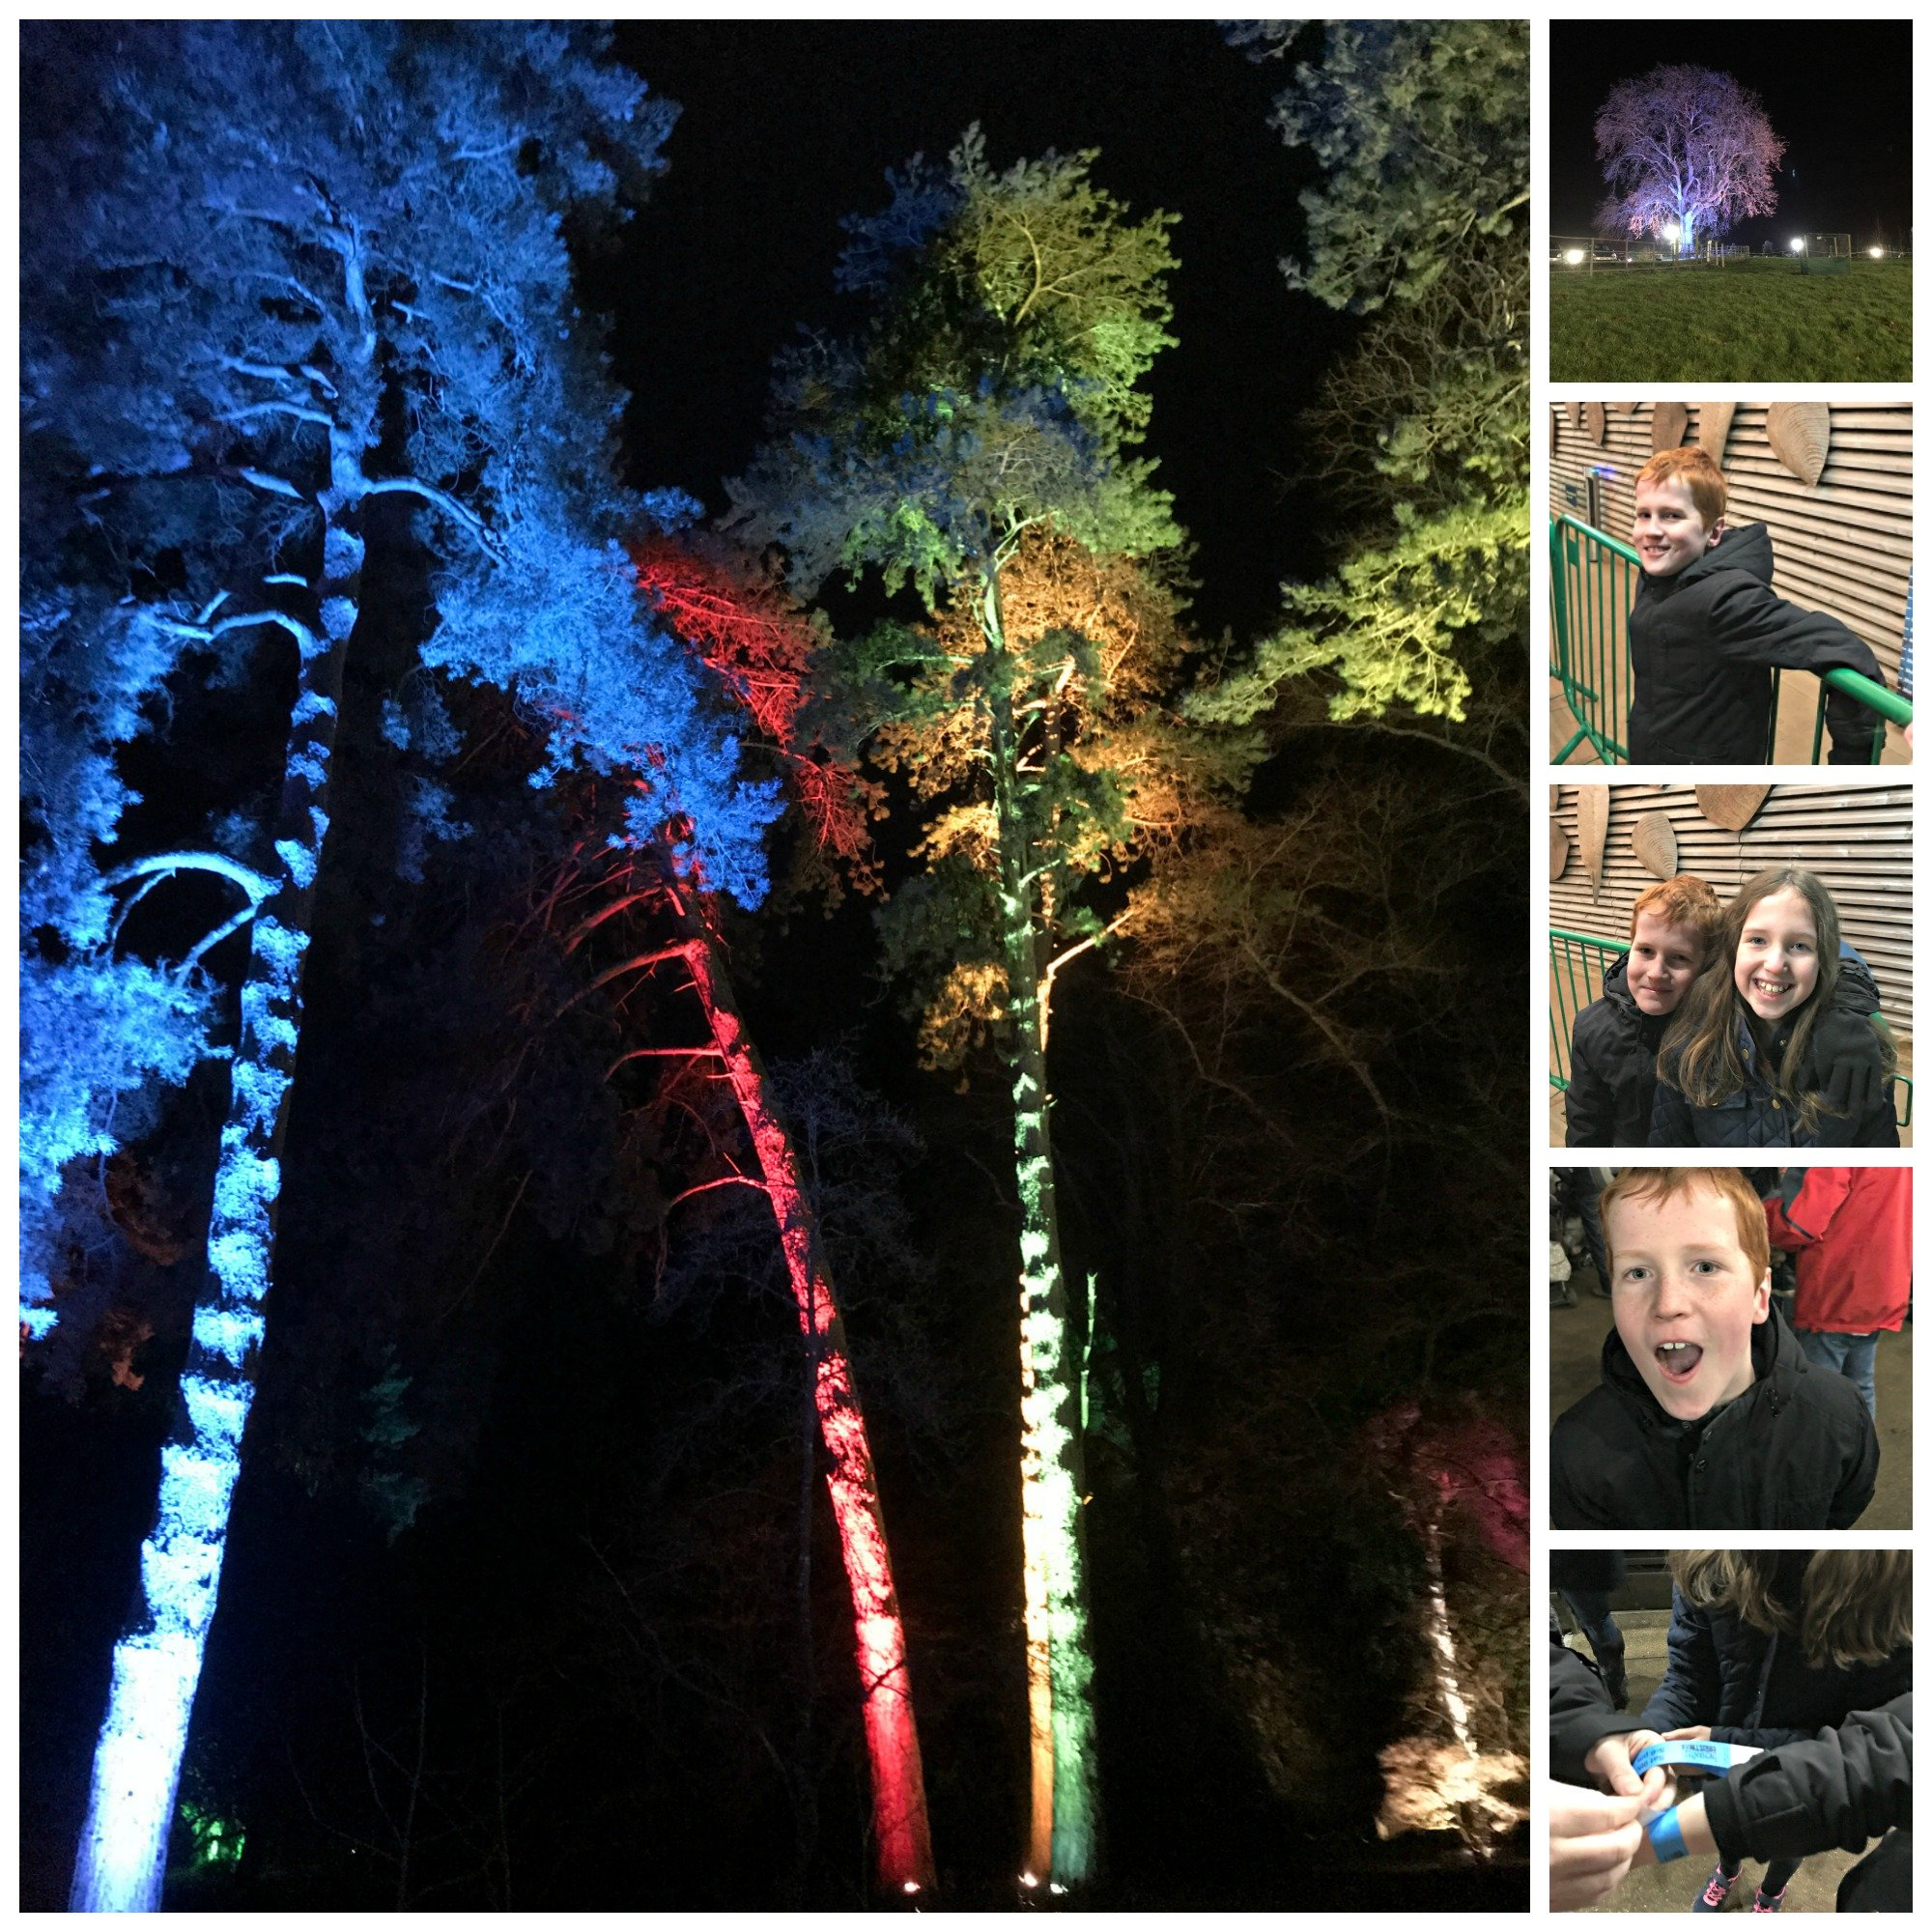 Our Visit To Westonbirt Arboretum Enchanted Christmas Trail